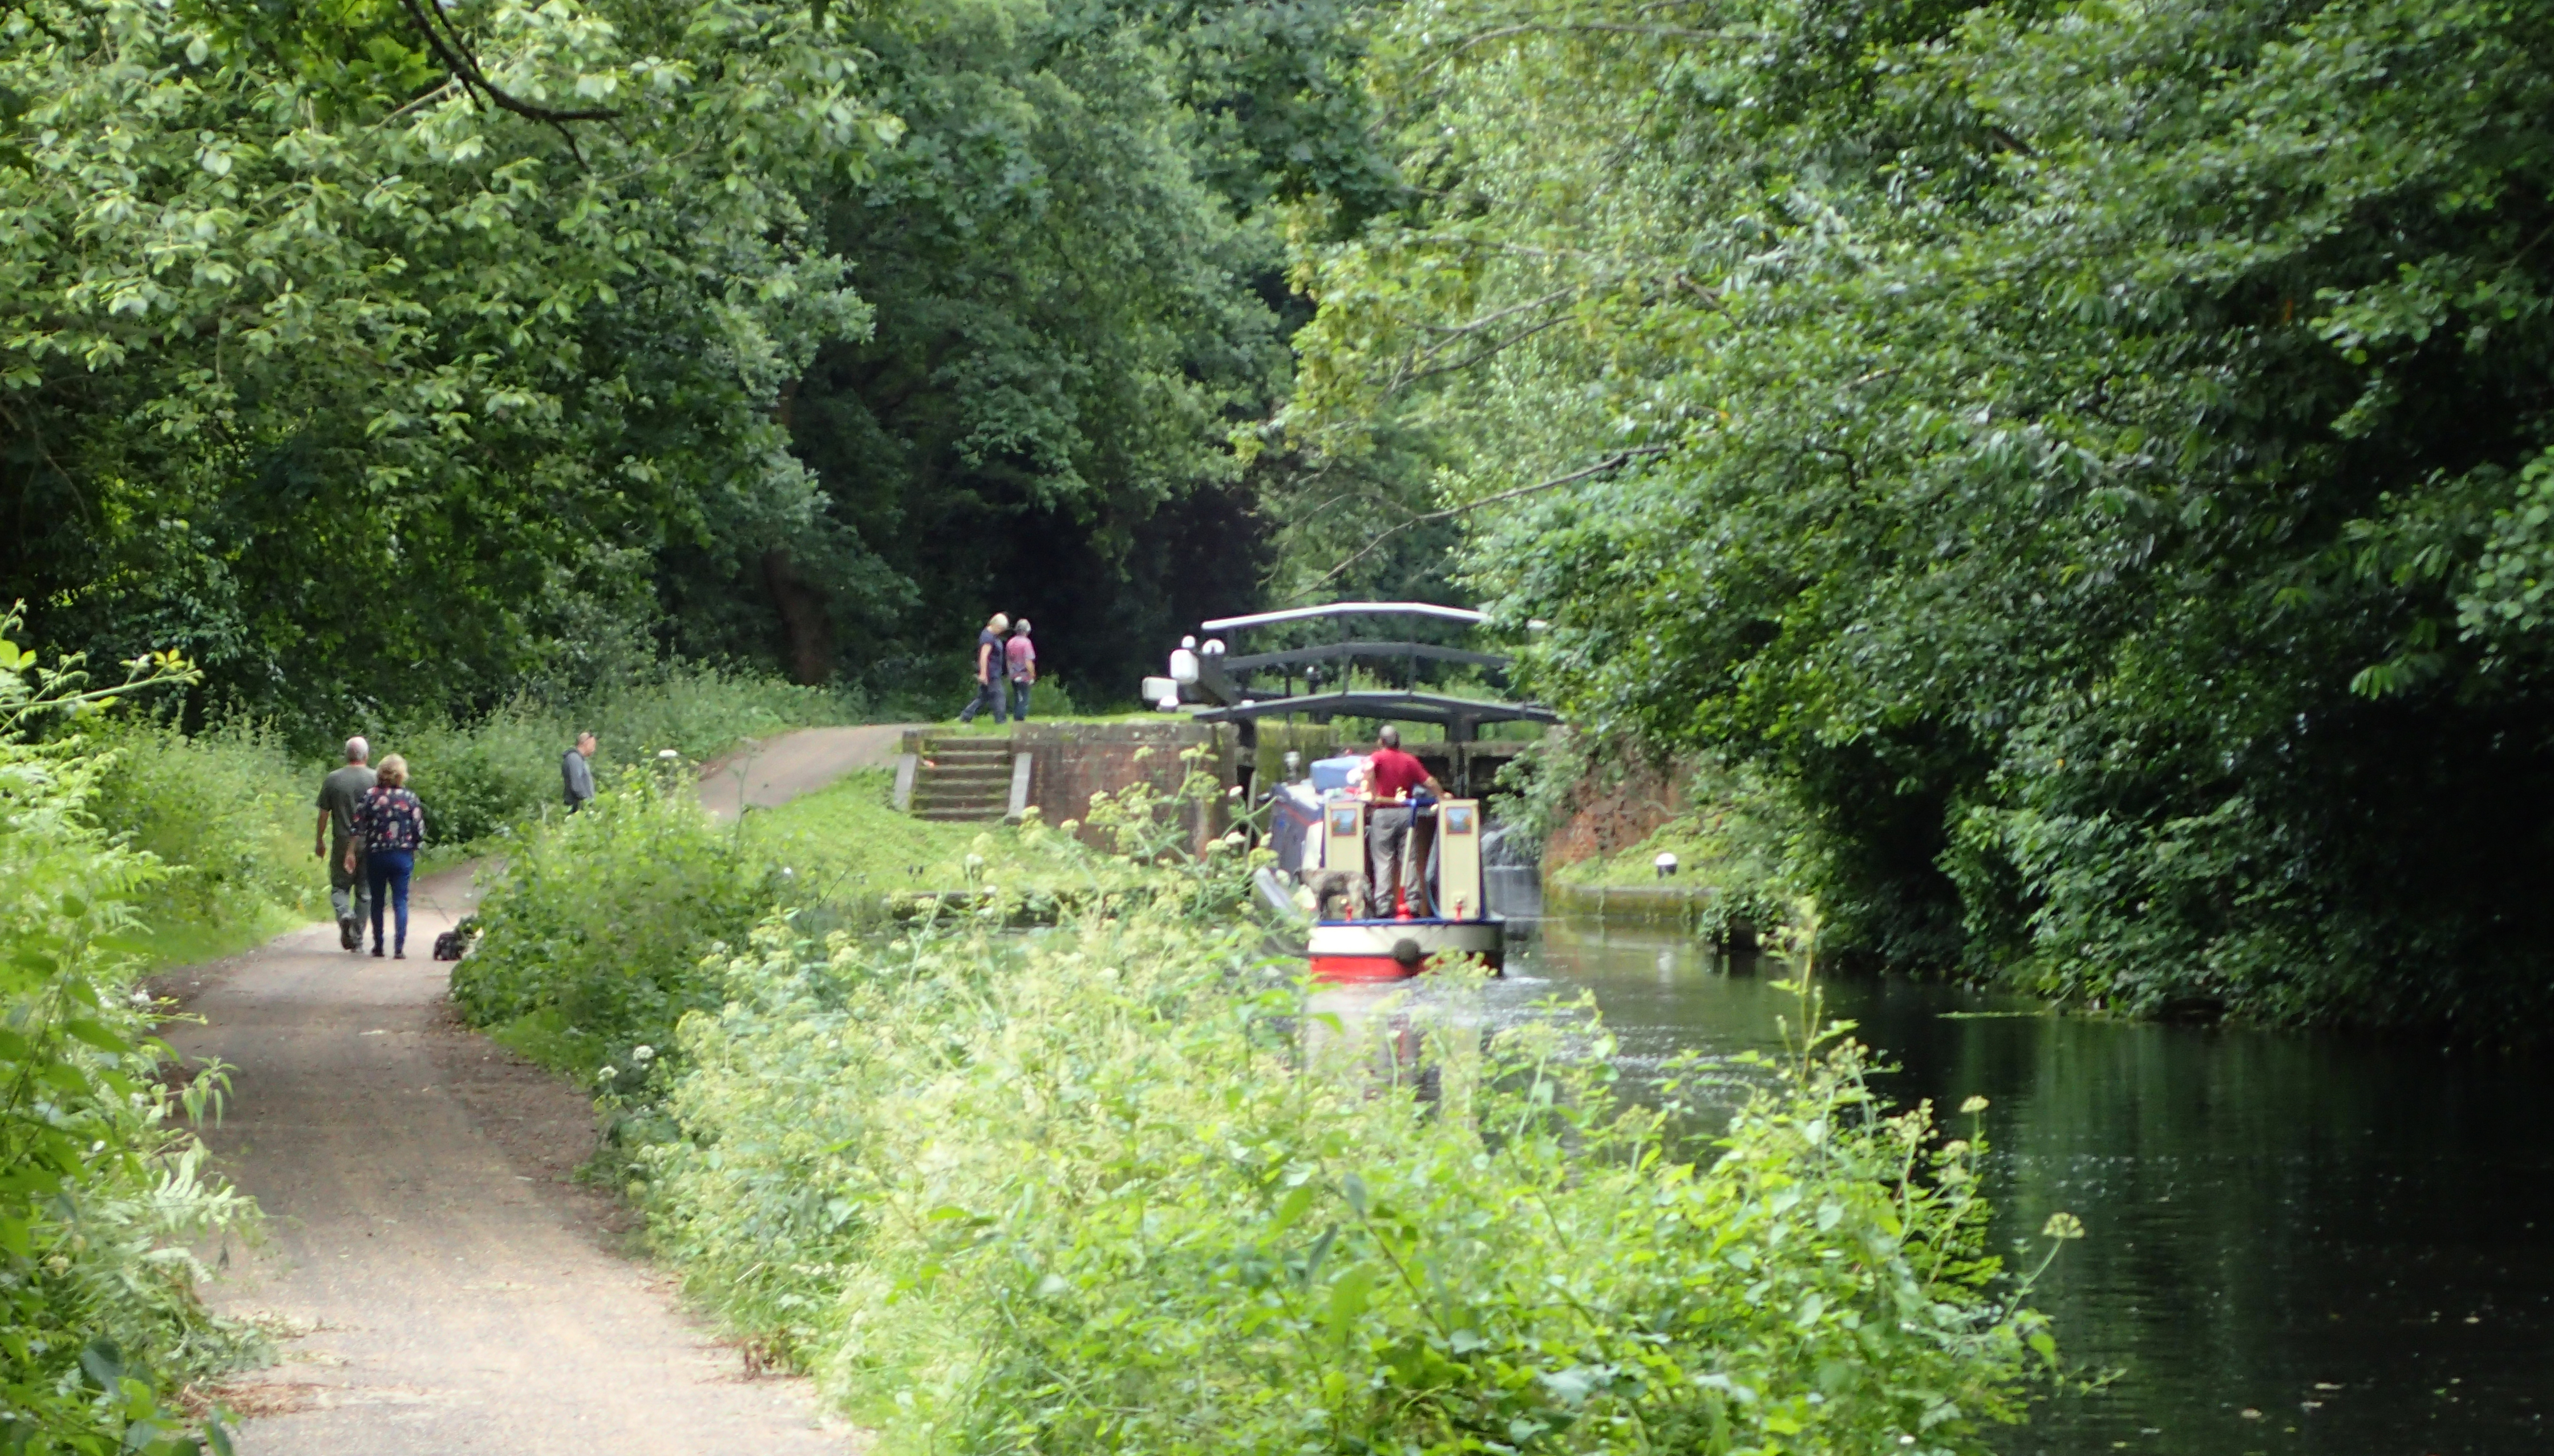 Two canals have been briefly followed so far, the Wey Navigation and the Basingstoke Canal (above). I particularly enjoyed this as I briefly worked on its restoration in the 1970s